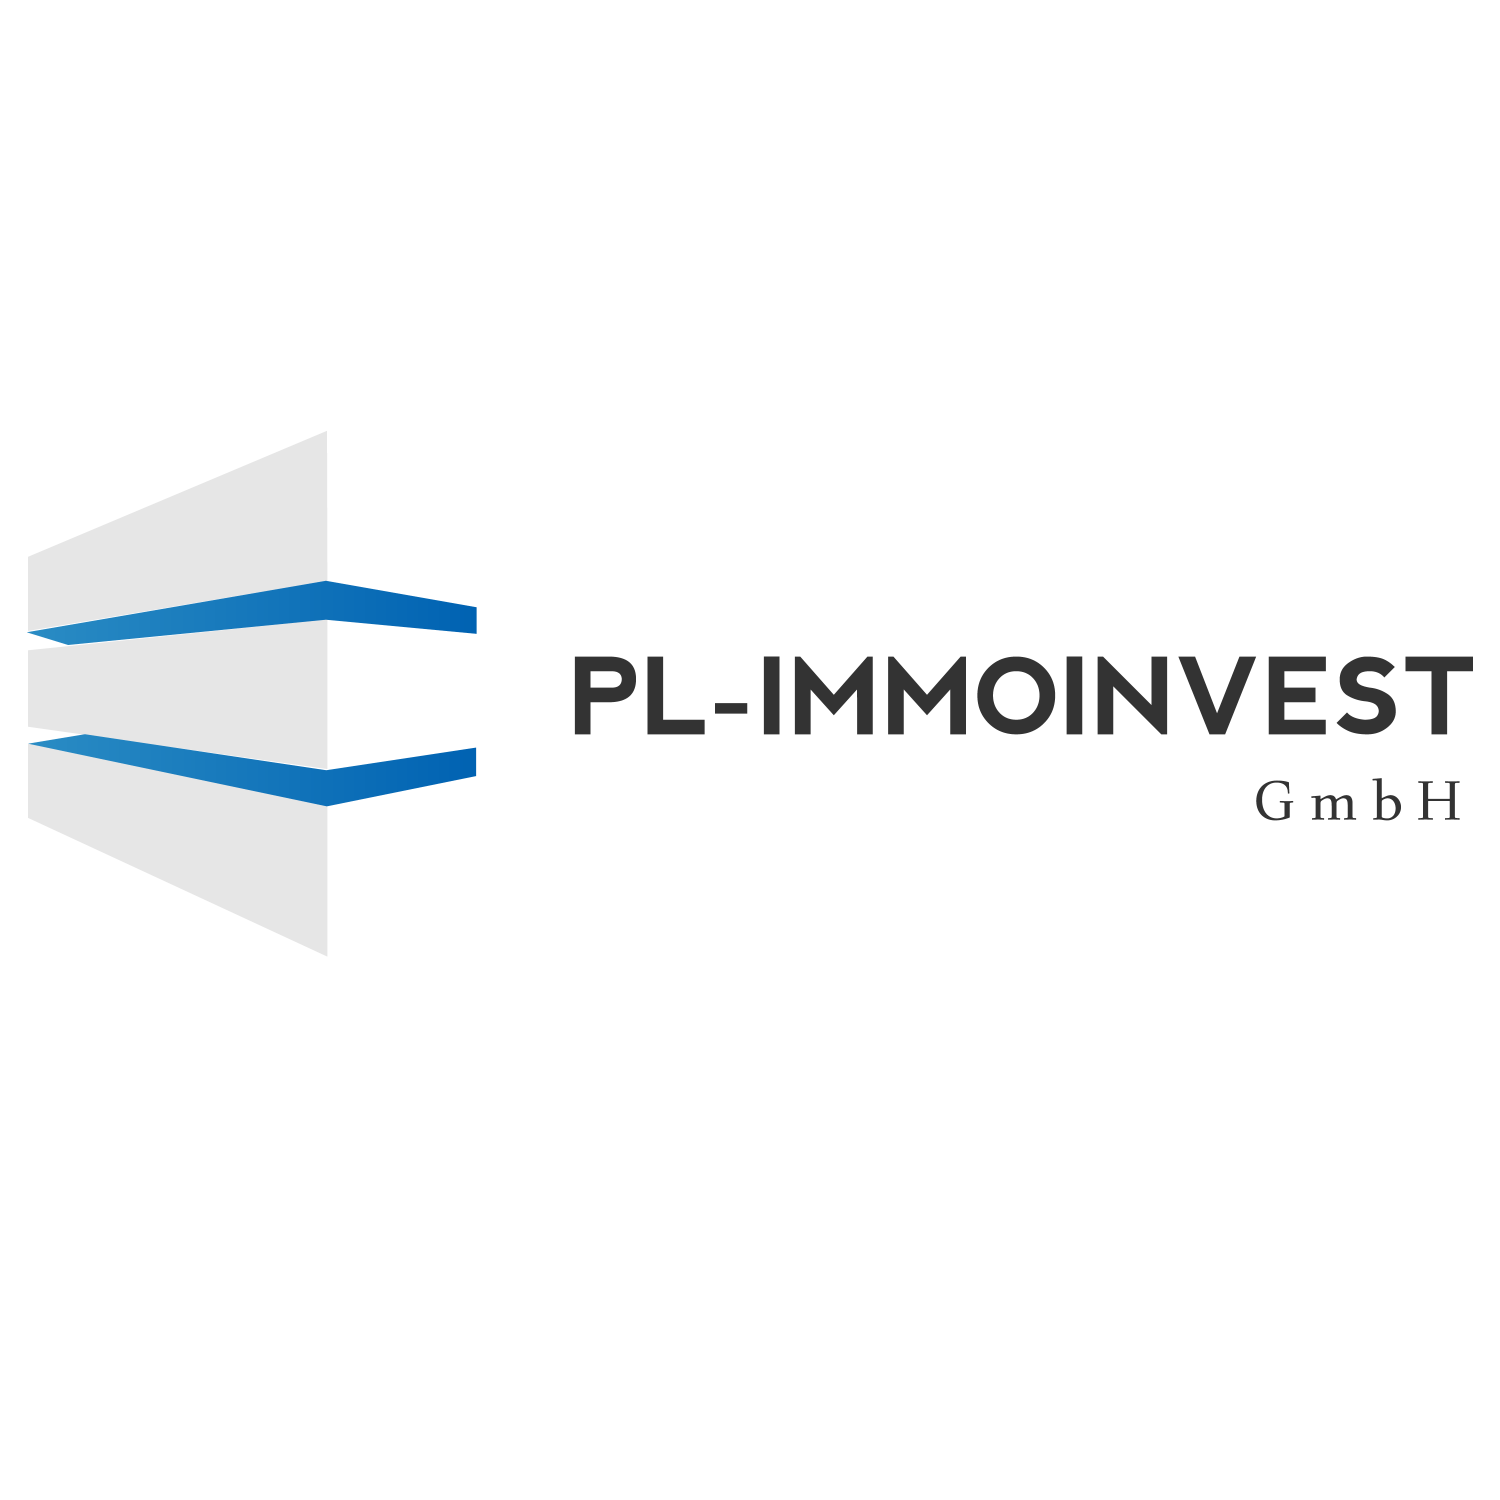 PL-ImmoInvest GmbH